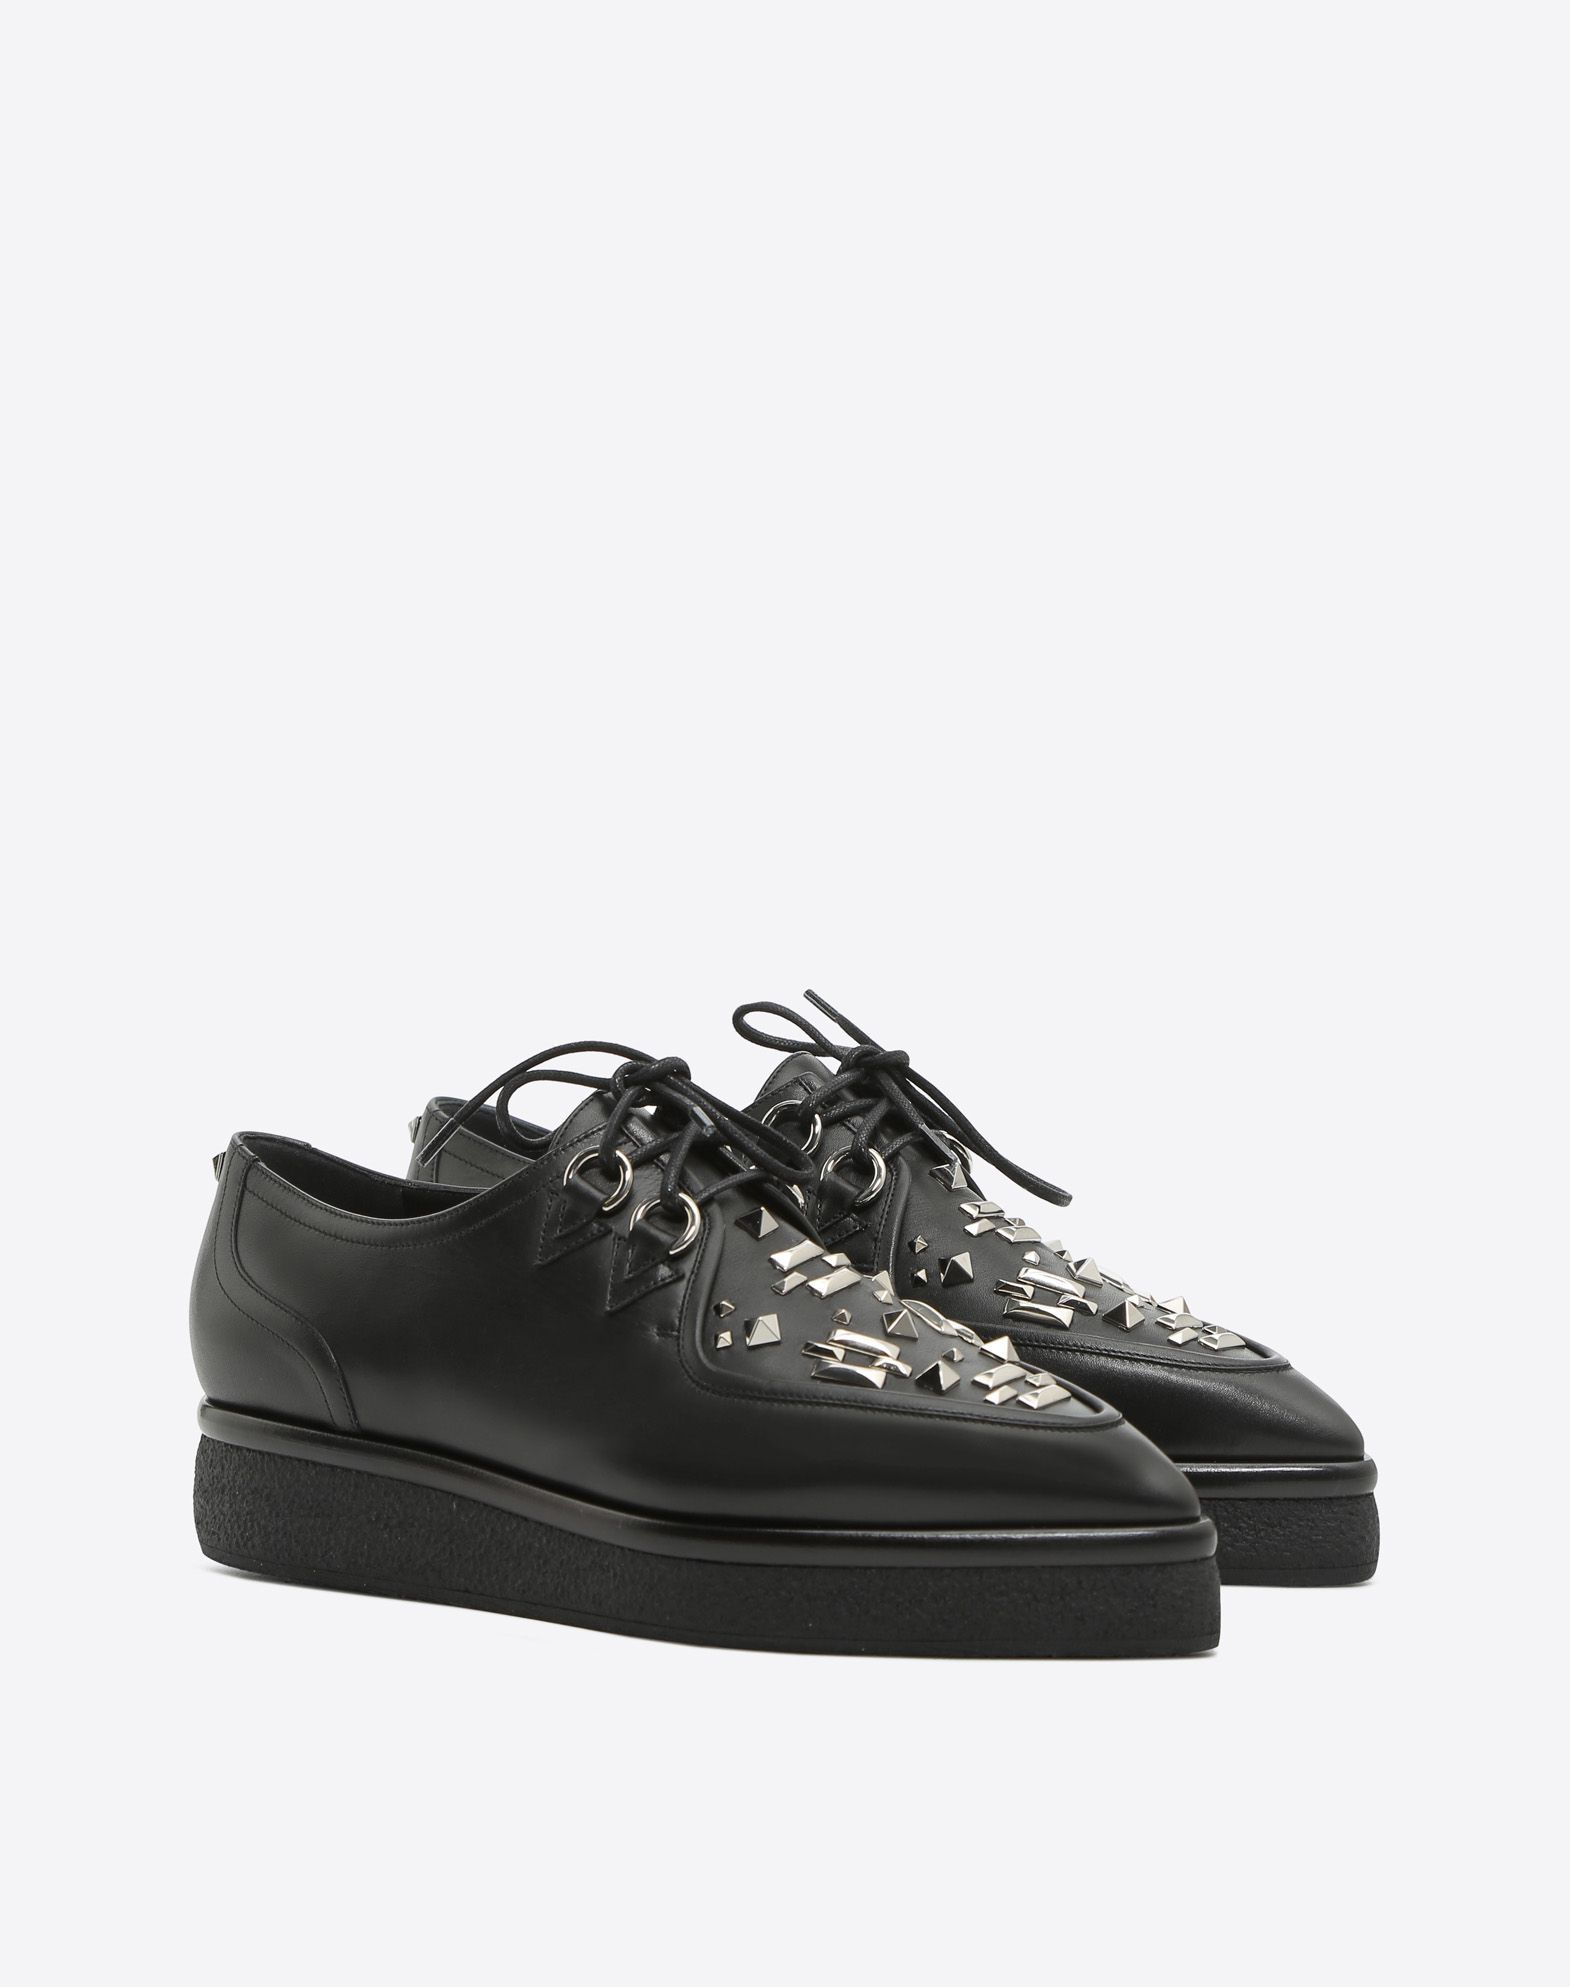 【17AW NEW】VALENTINO_women /PUNK-EMBROIDERY DERBY/Black